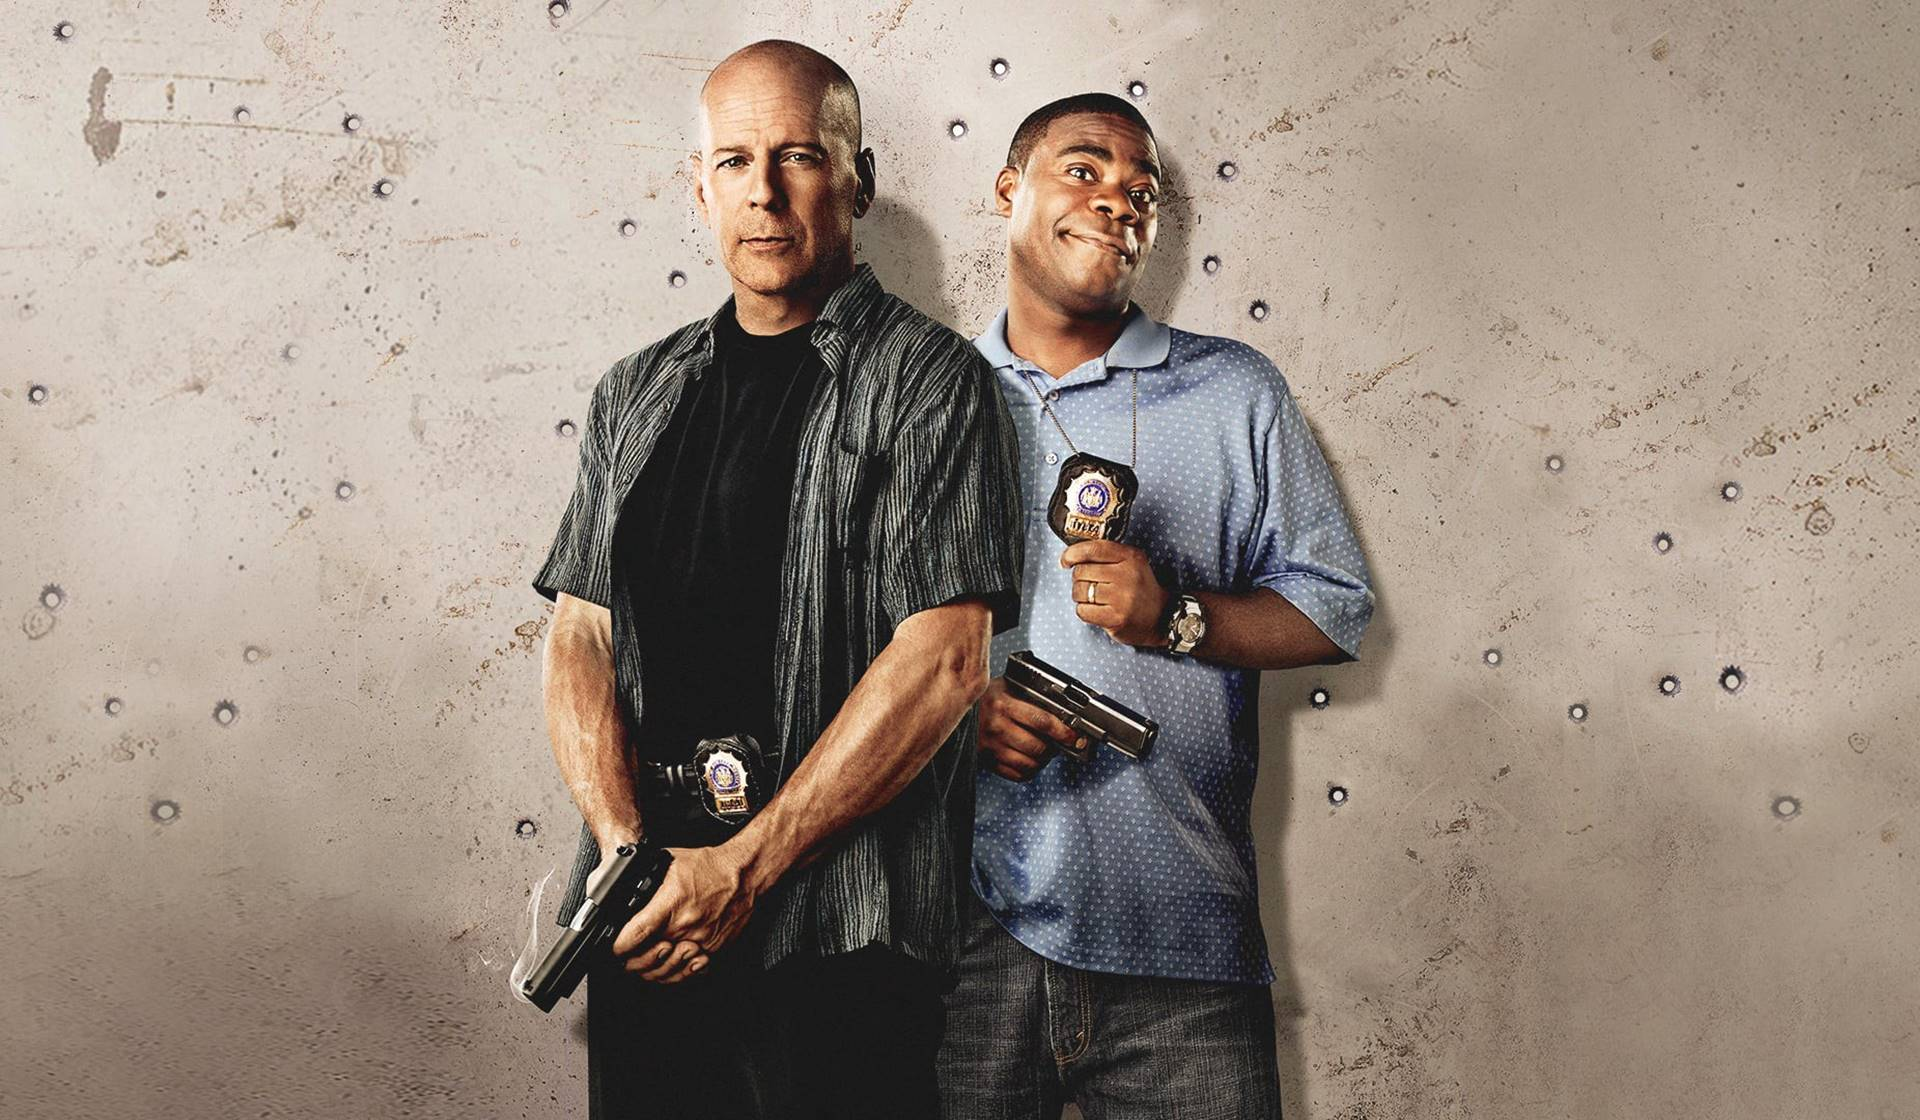 Bruce Willis y Tracy Morgan en Cop Out. Imagen de Medium